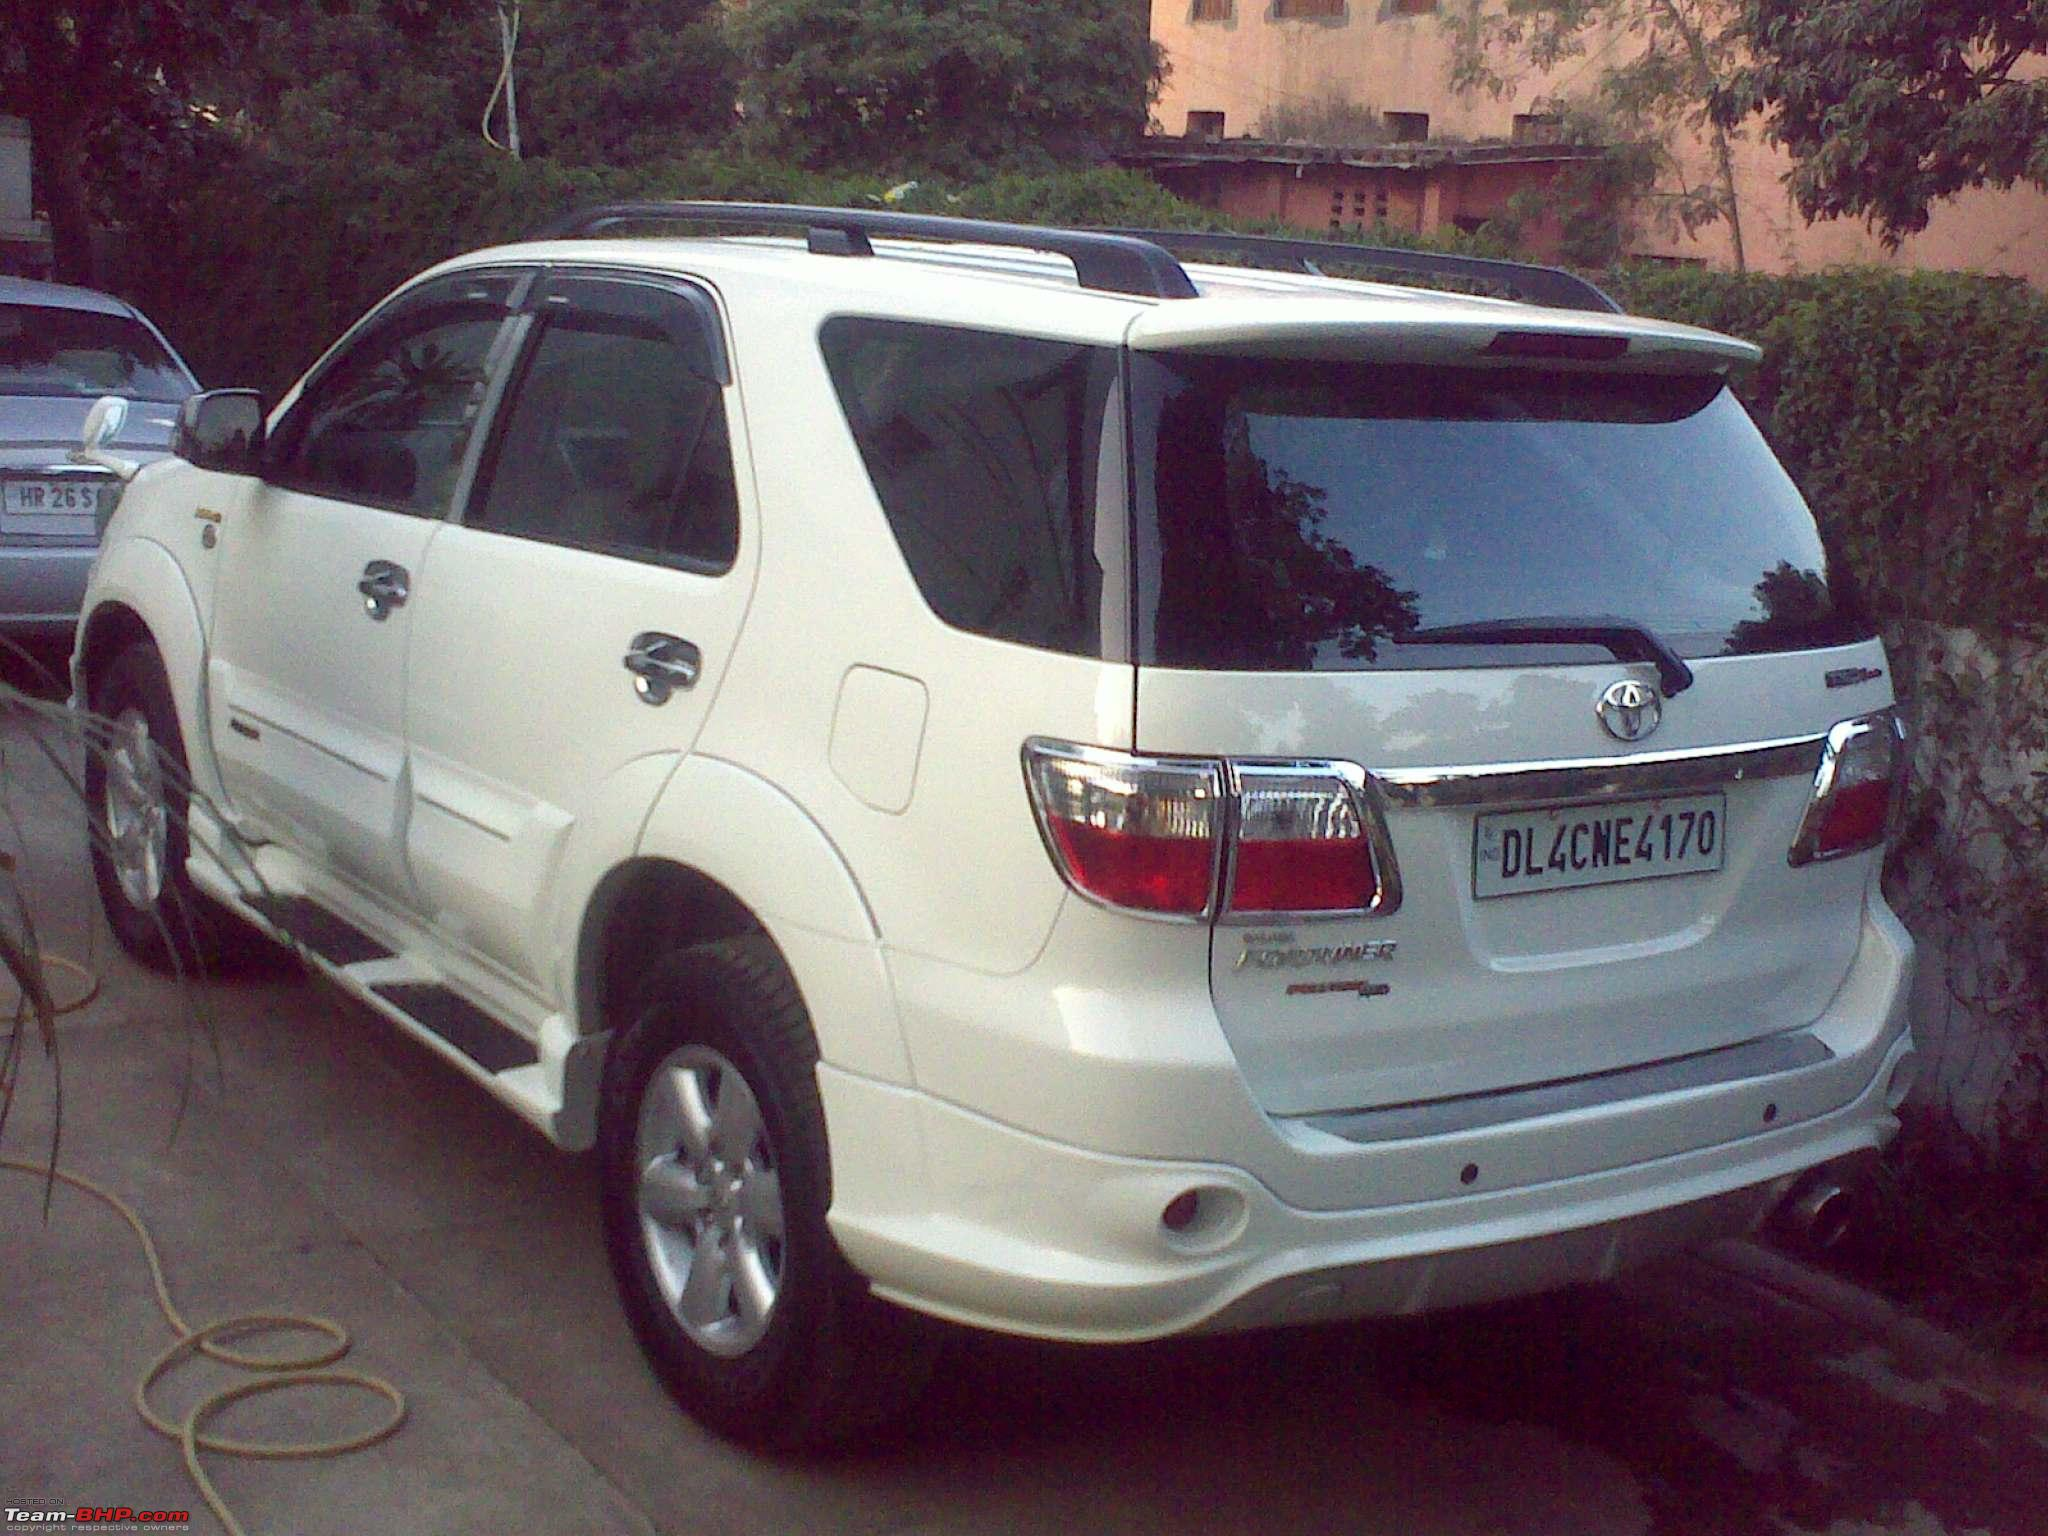 toyota fortuner vs upcoming face-lifted toyota fortuner - page 2